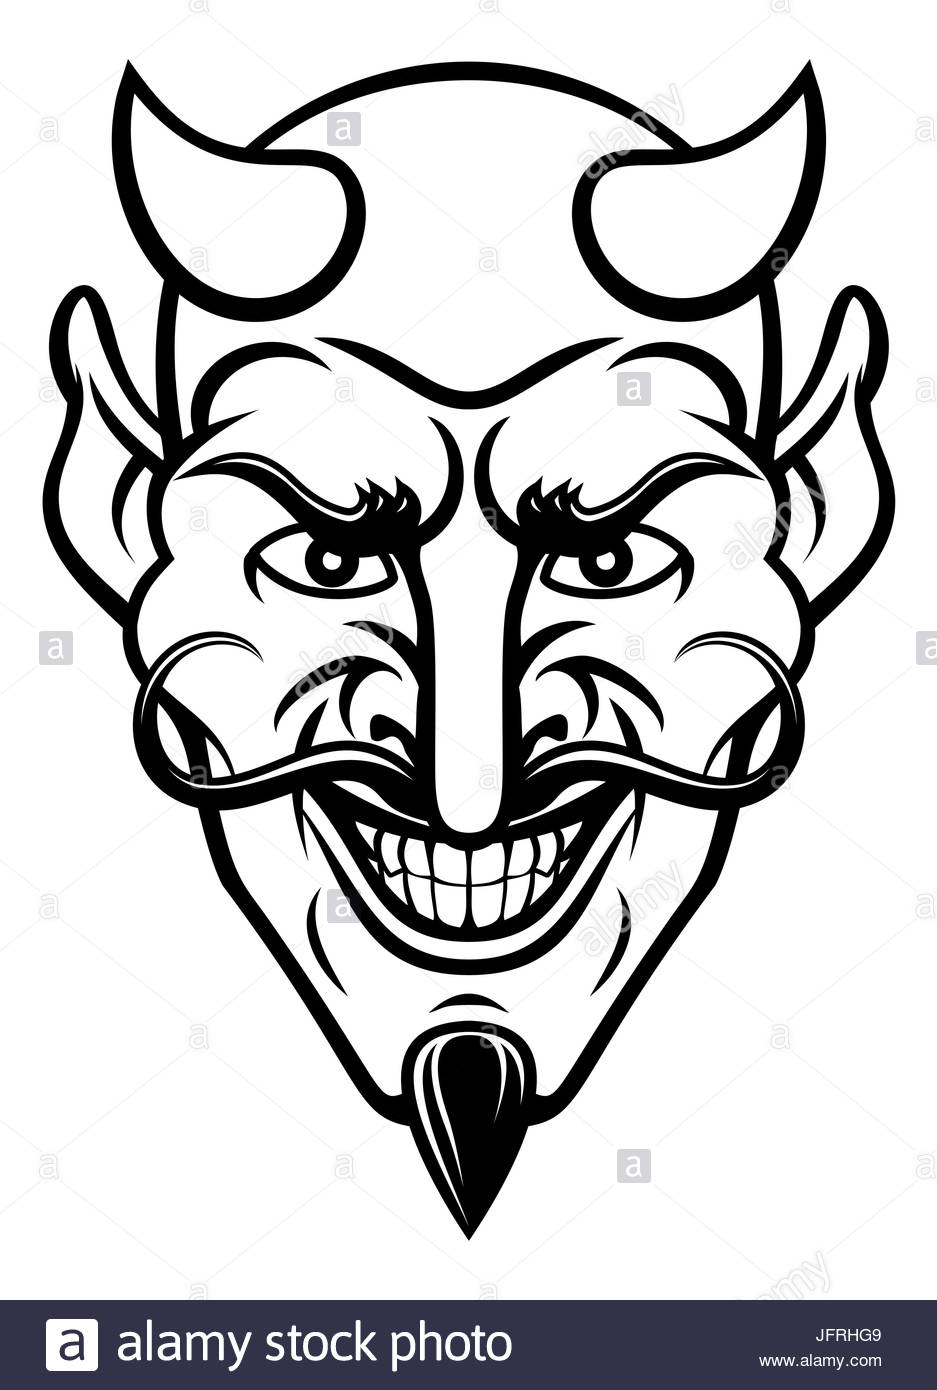 937x1390 A Devil Cartoon Character Sports Mascot Face With An Evil Grin